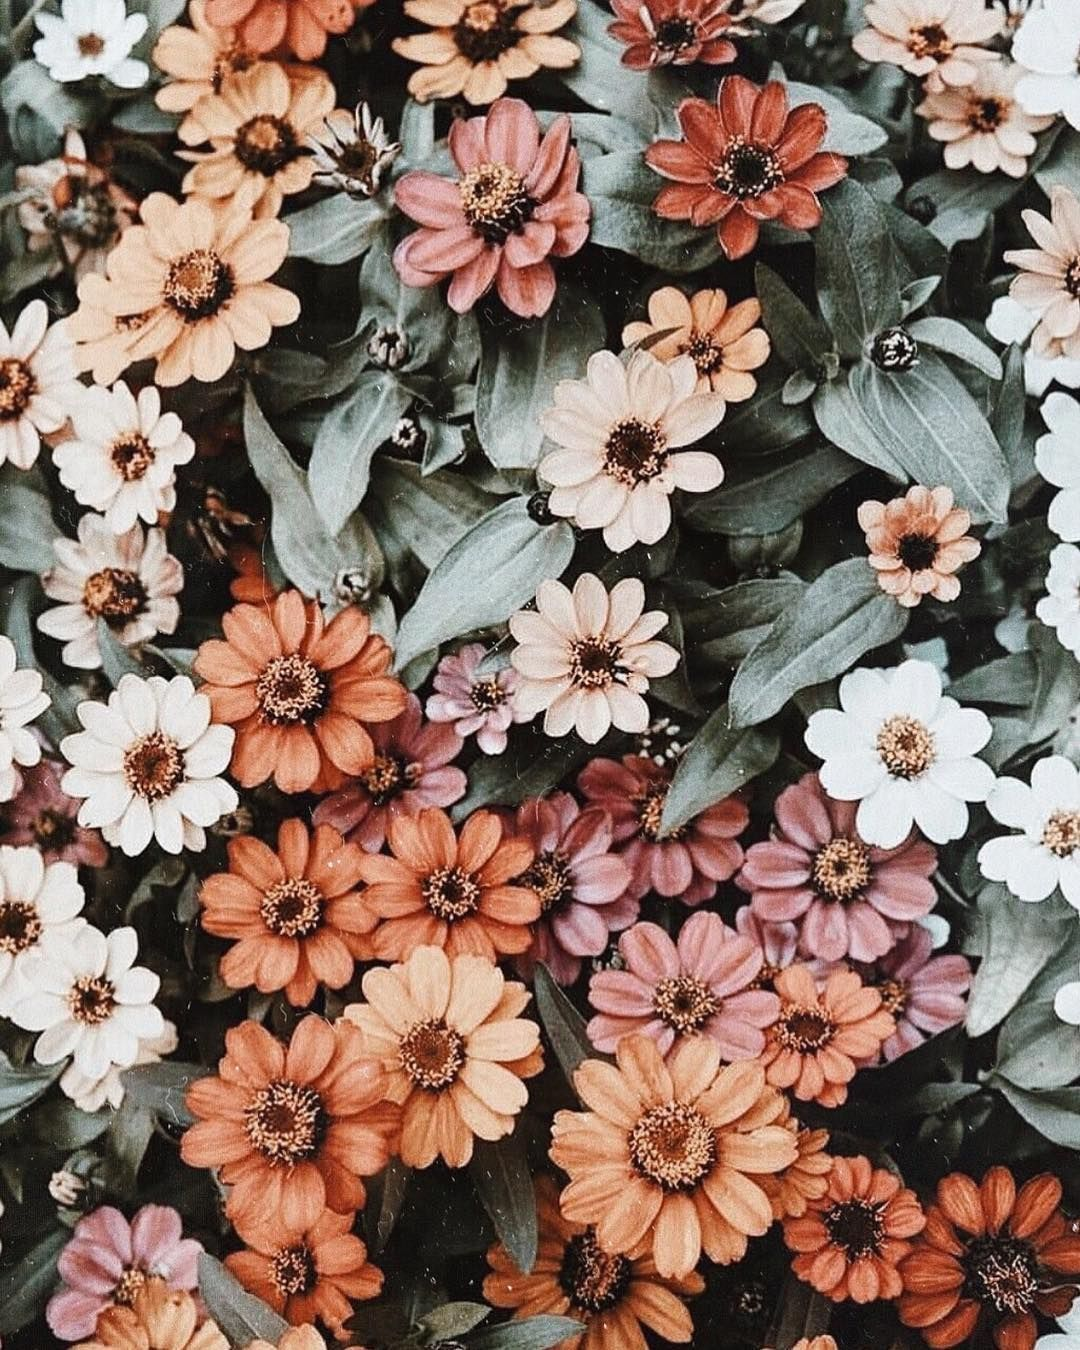 Aesthetic Hd Iphone Wallpapers Flowers In 2020 Spring Desktop Wallpaper Flower Aesthetic Vintage Flowers Wallpaper